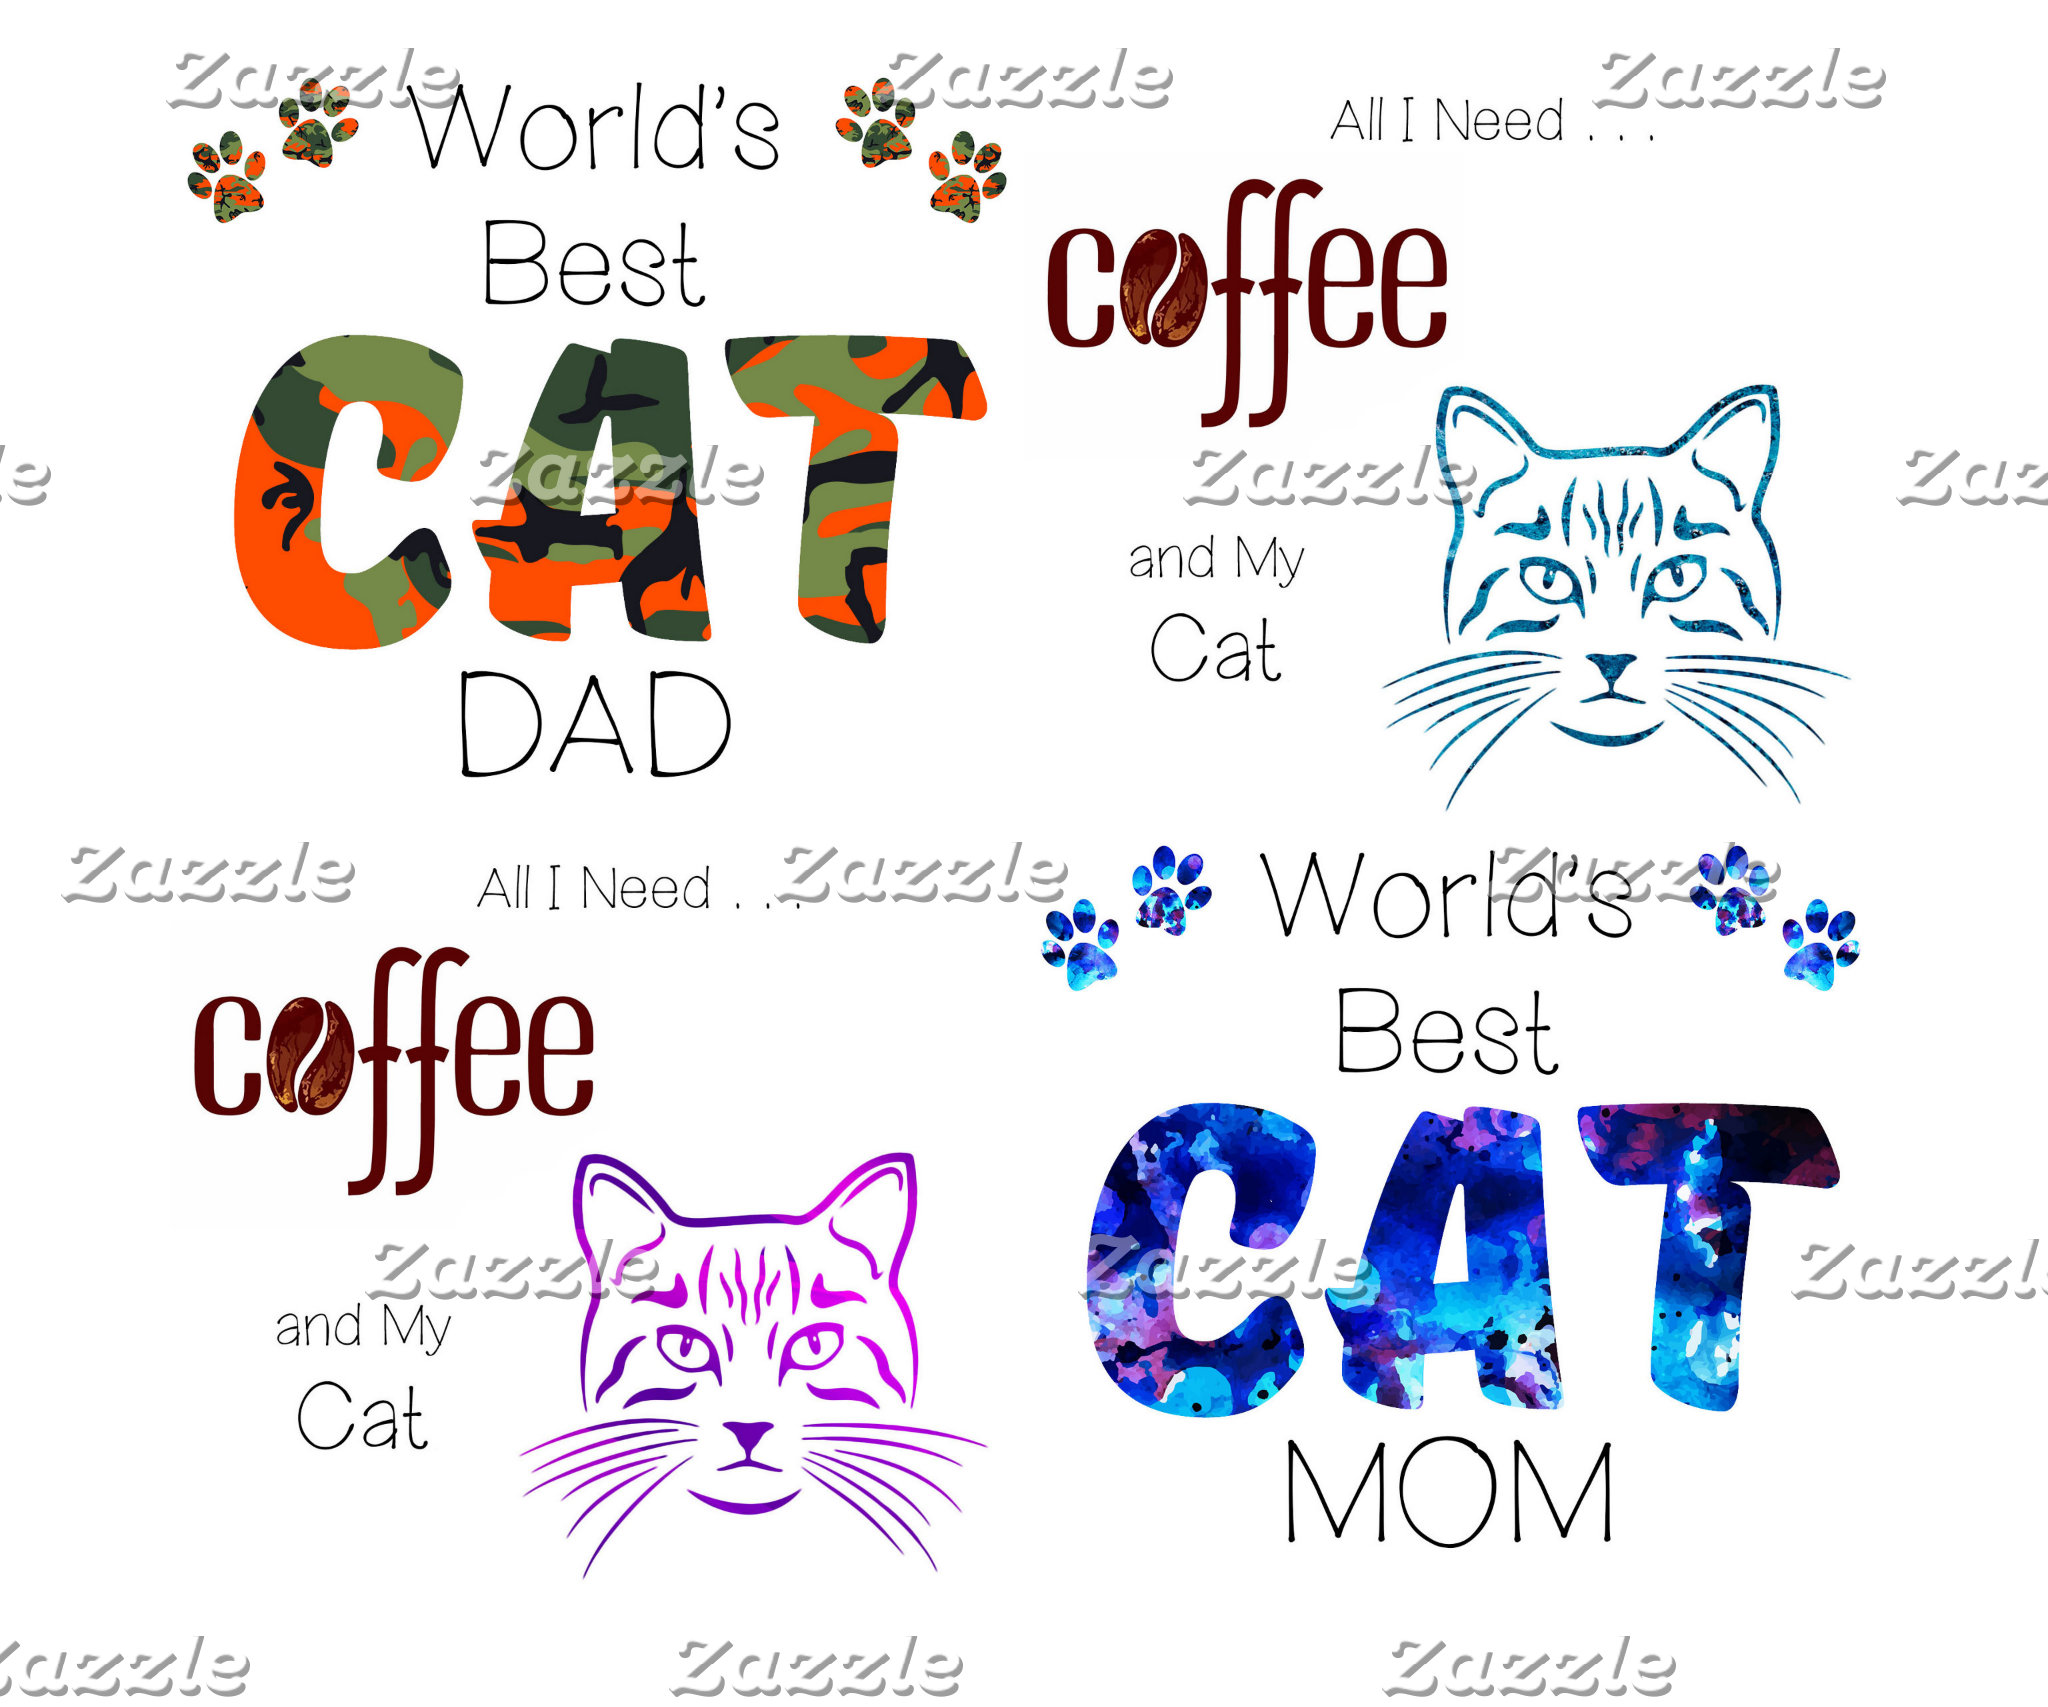 All I need is Coffee and My Cat - Cat Lover Mugs